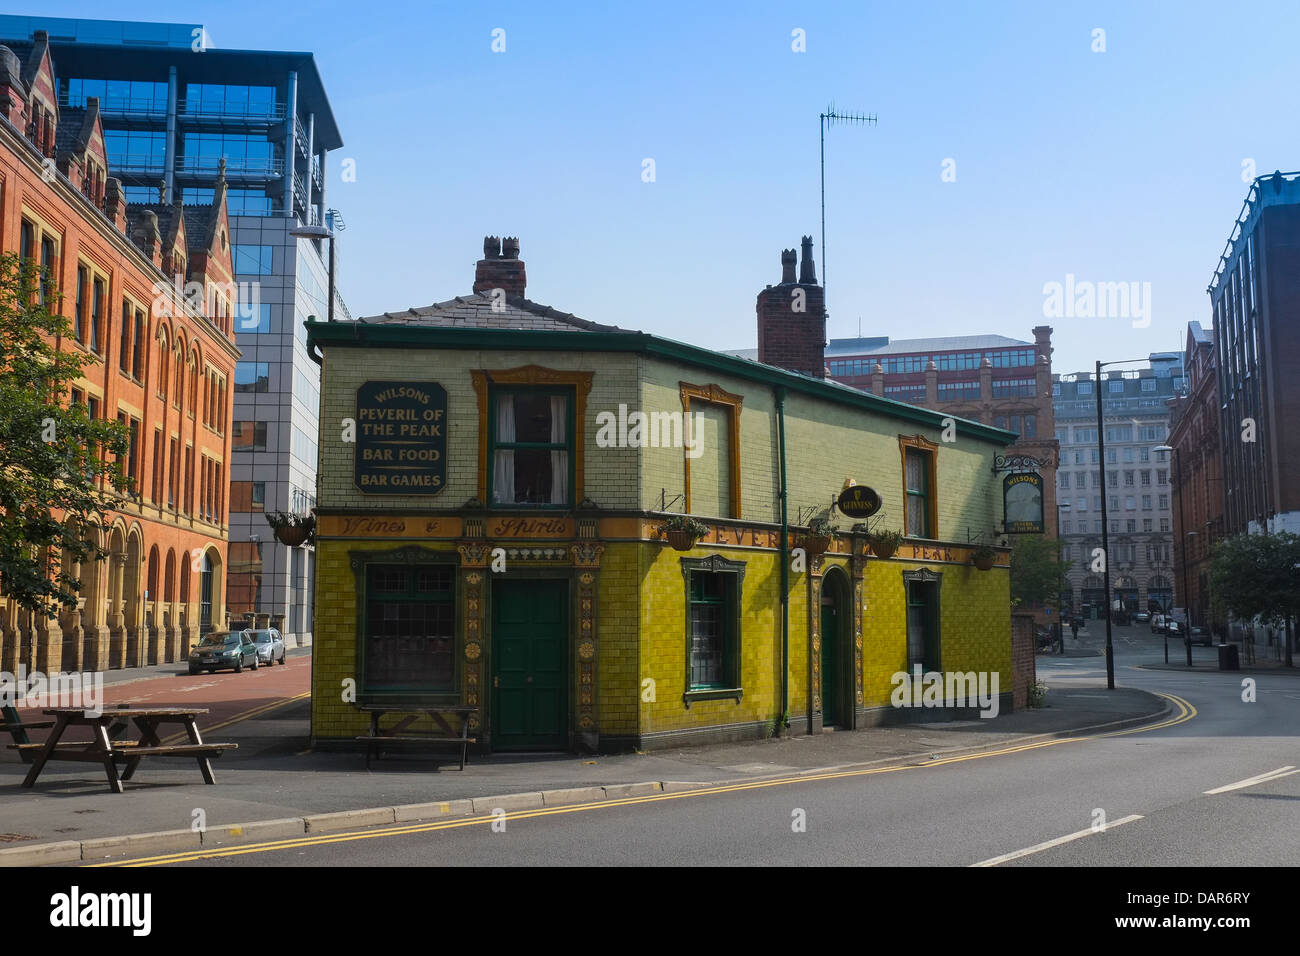 England, Manchester, view towards Peveril of the Peak Public house Stock Photo